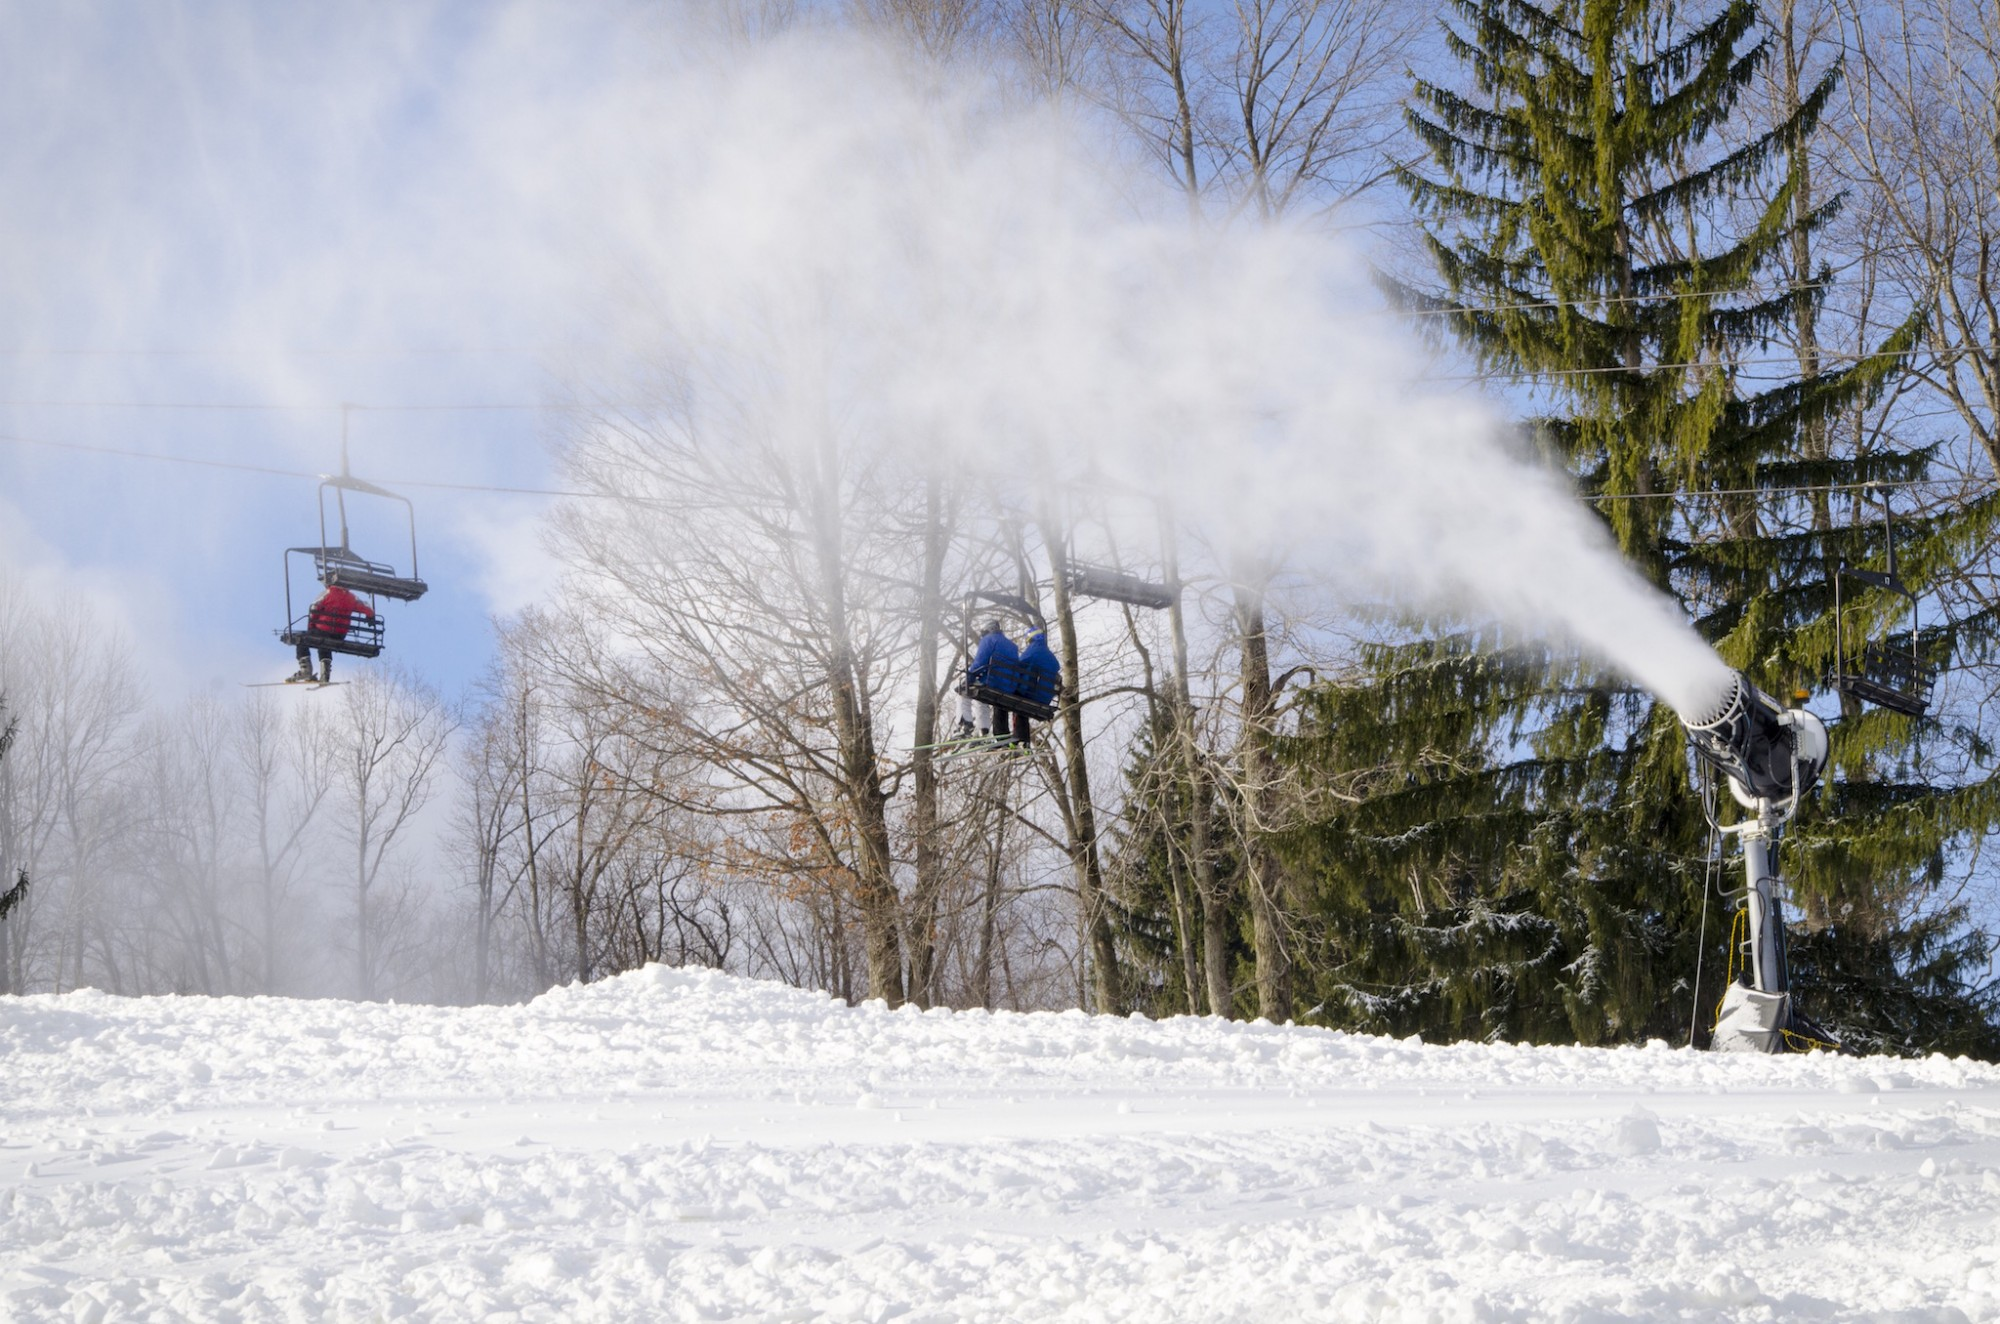 Snowmaking will continue, even after Opening Day at Snow Trails